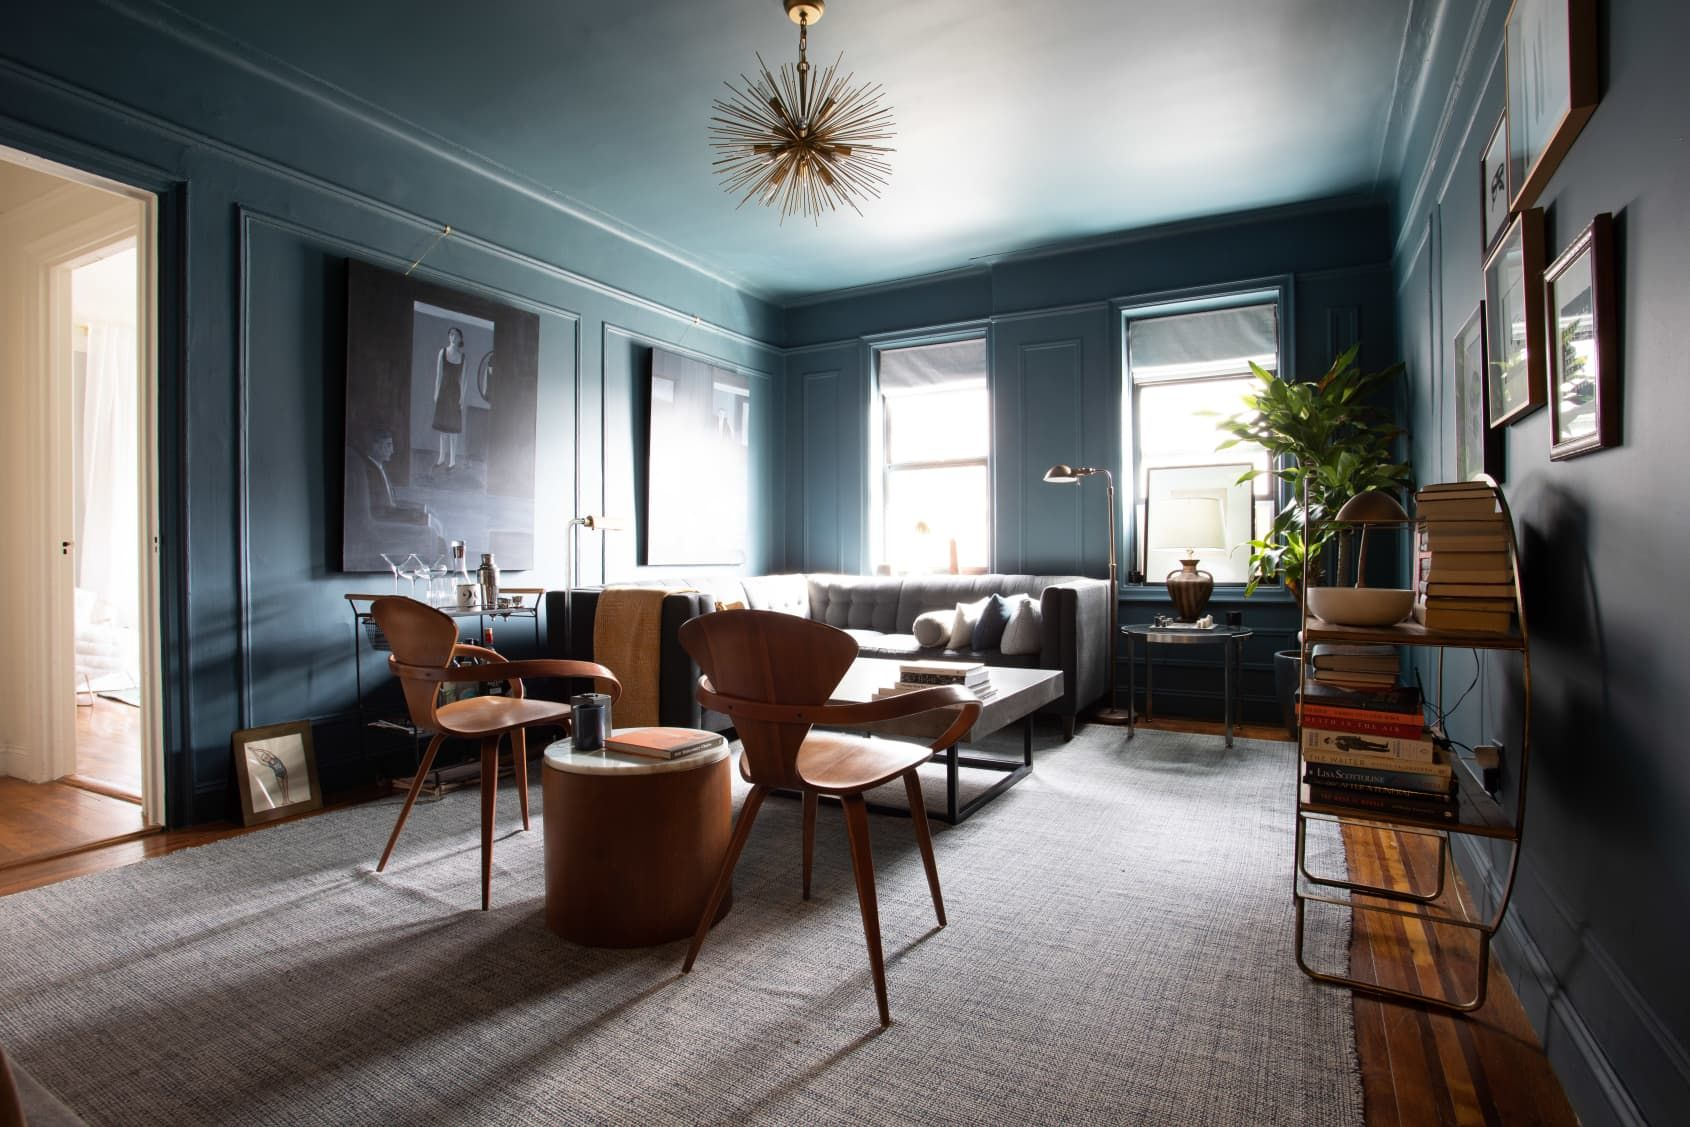 Hoteliers Turn a Cozy NYC Apartment into a Moody, Hygge ...